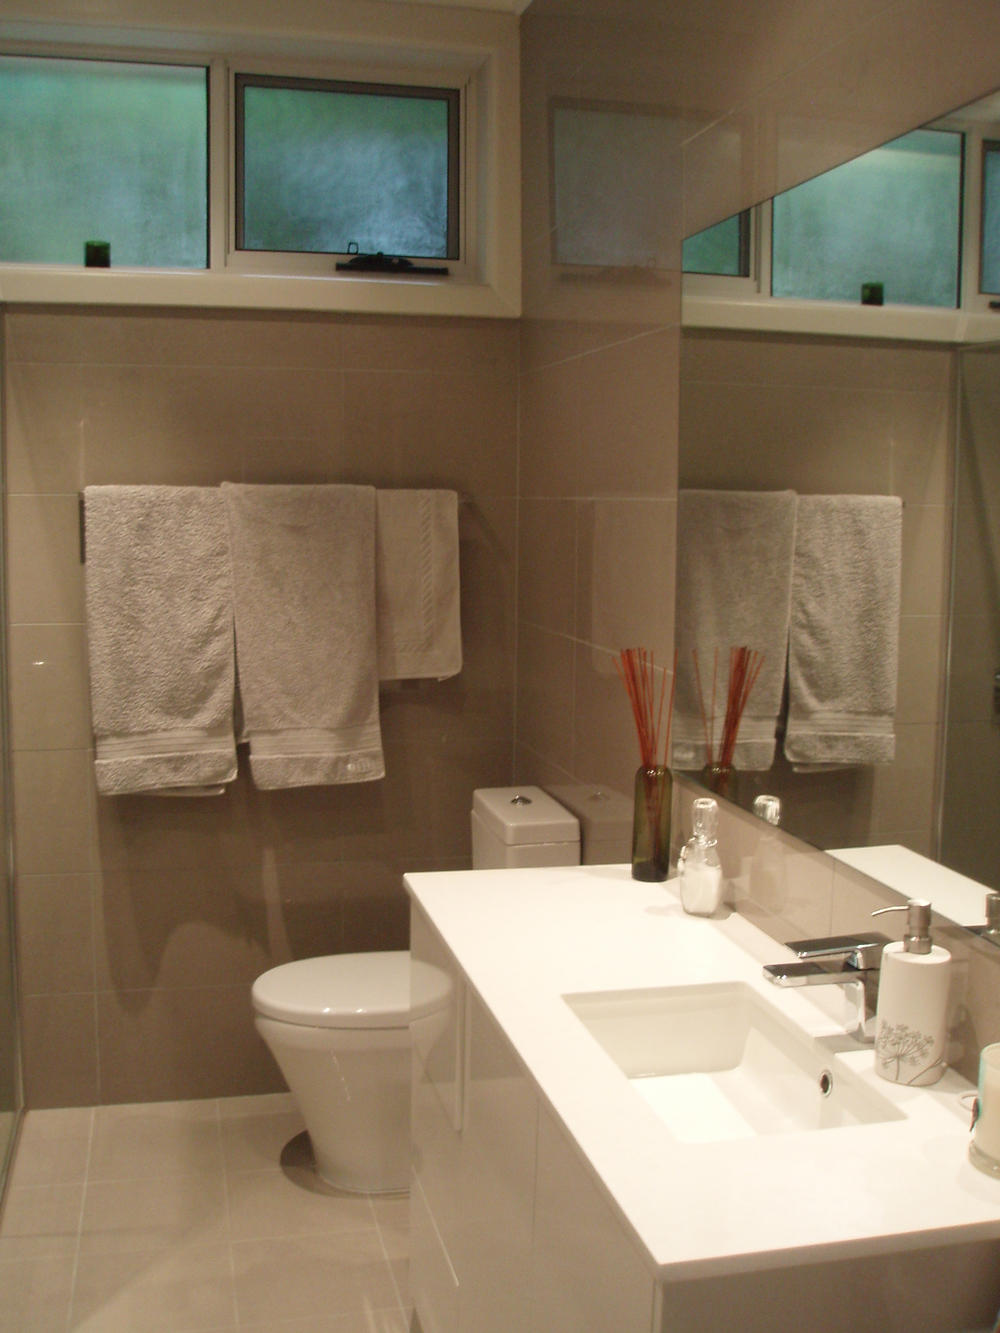 Bathroom Renovation (after) - Chris & Bill, Como